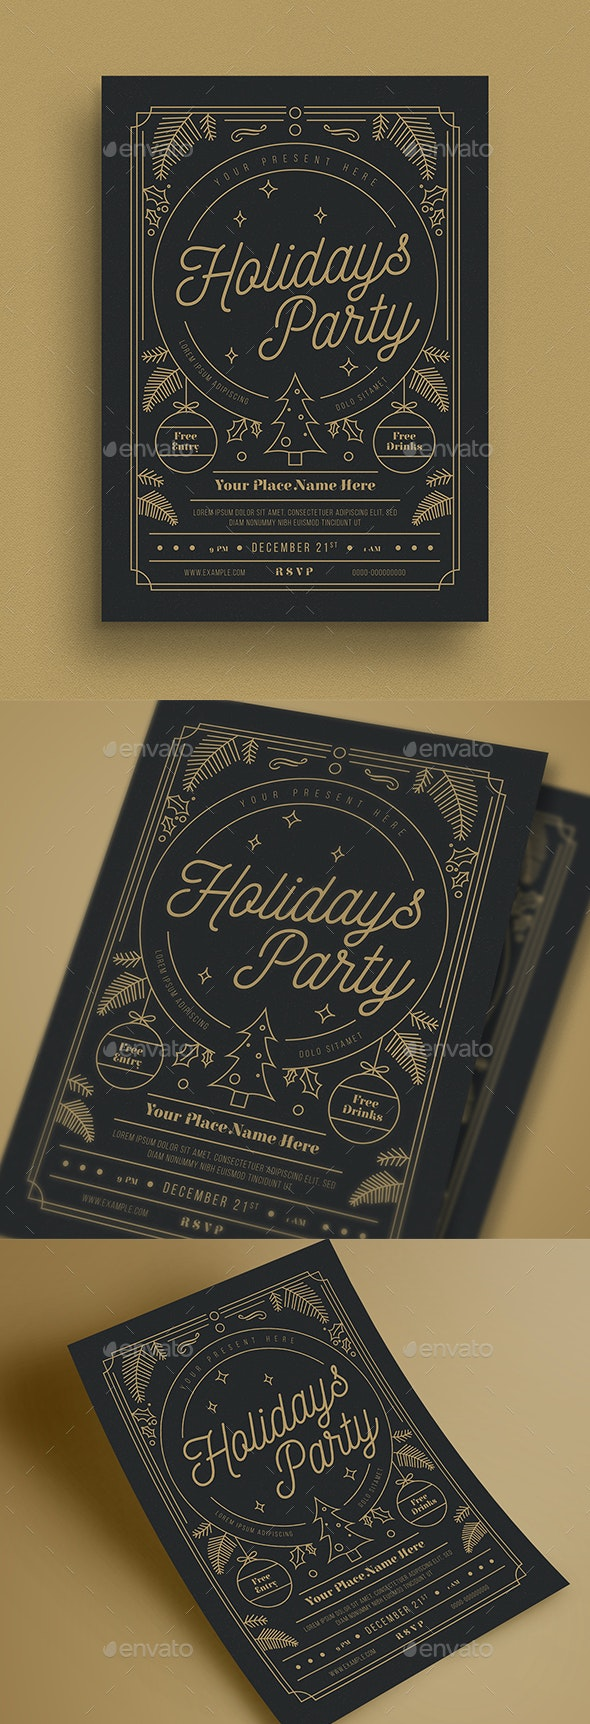 Gold Holiday Party Flyer - Holidays Events